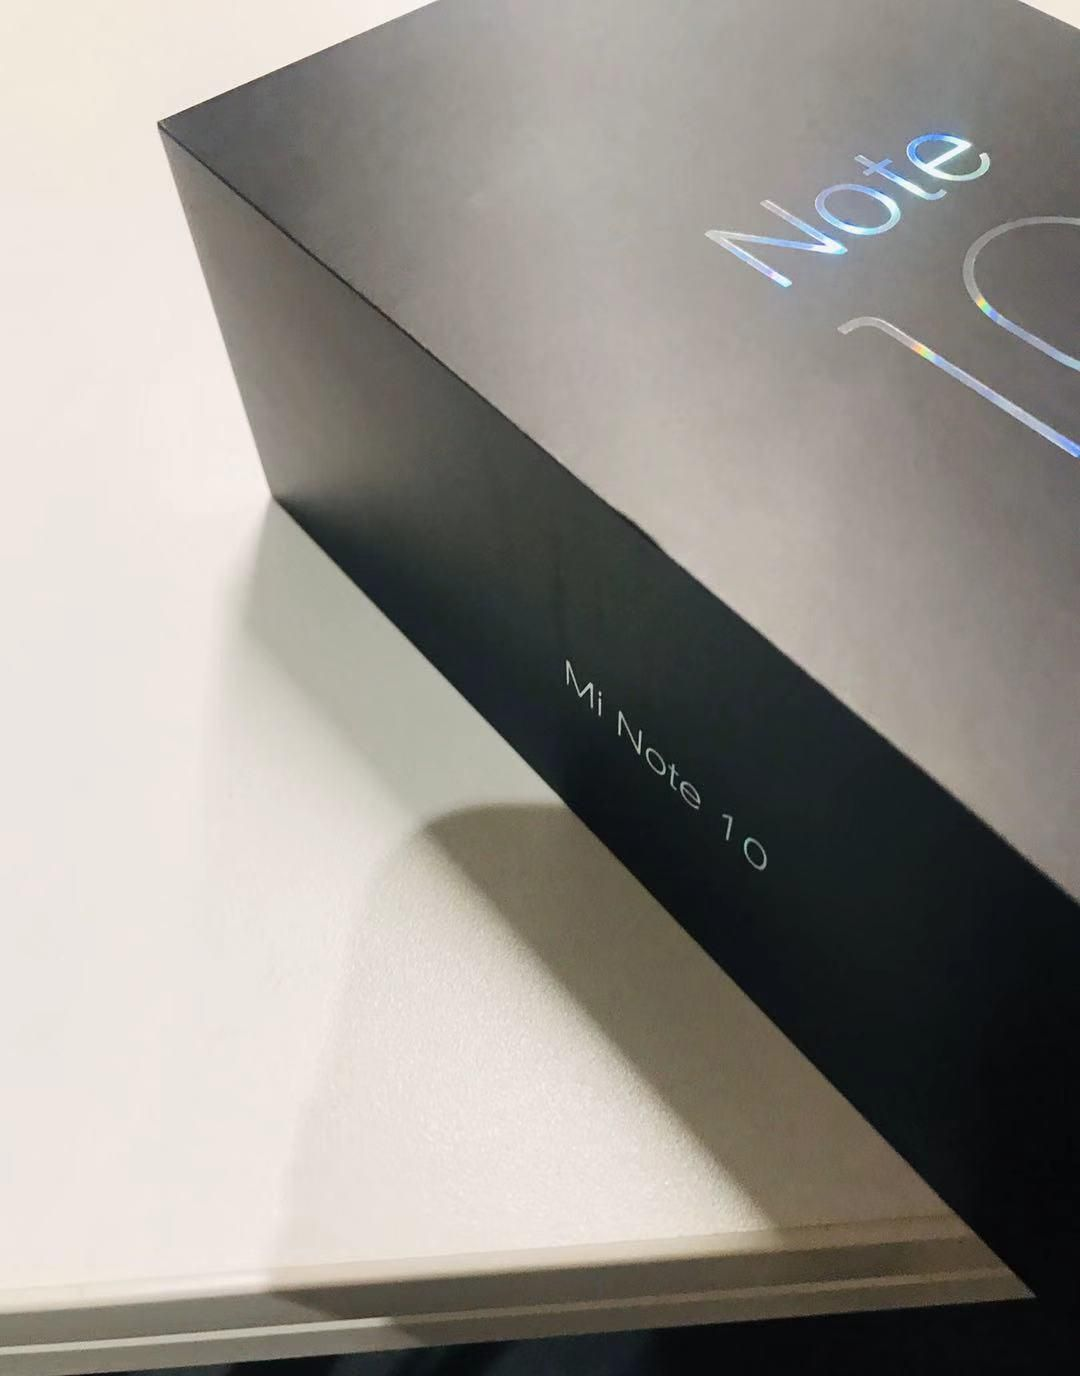 Xiaomi Mi Note 10's retail box leaked